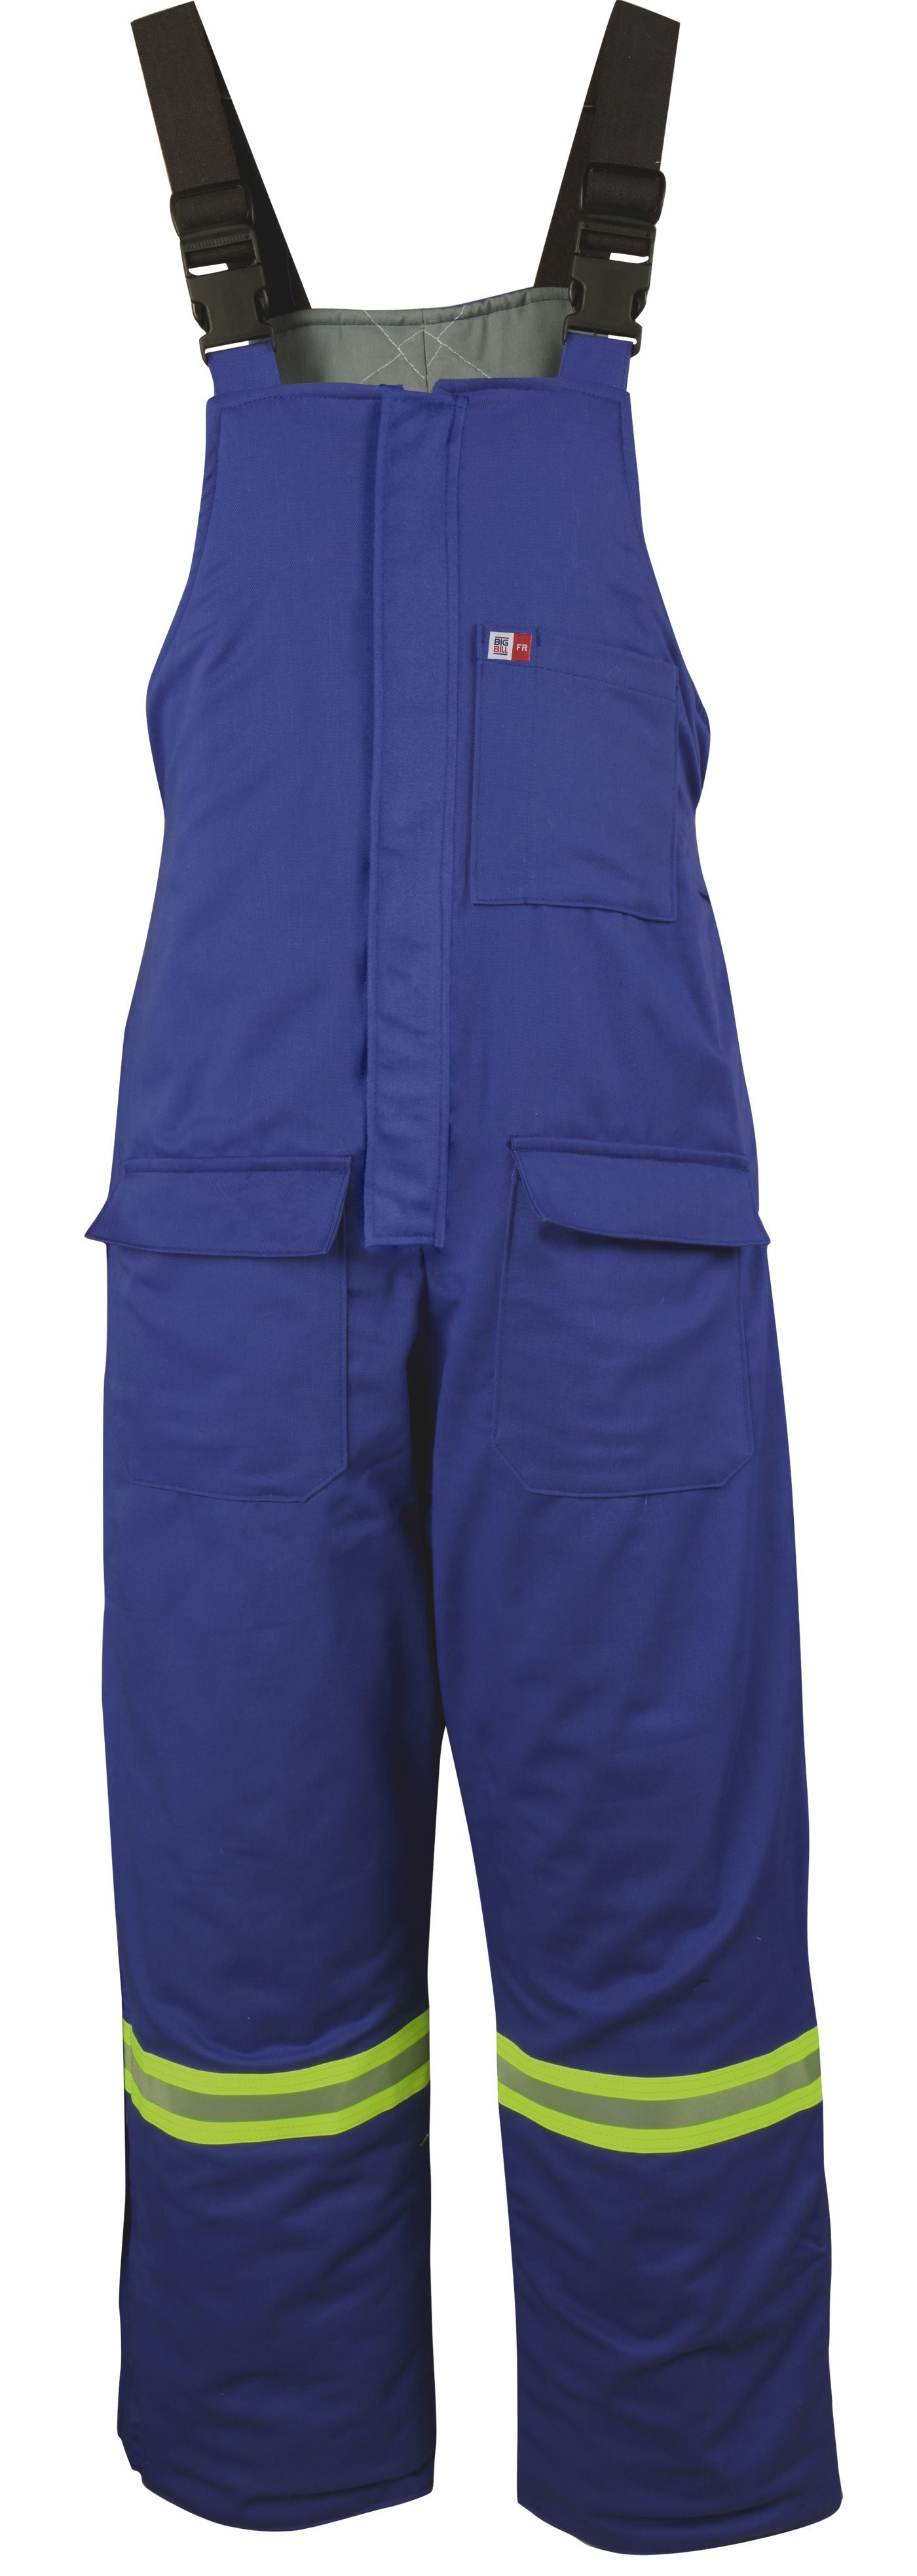 7 oz Ultrasoft® Insulated Bib Overall with Reflective Material-